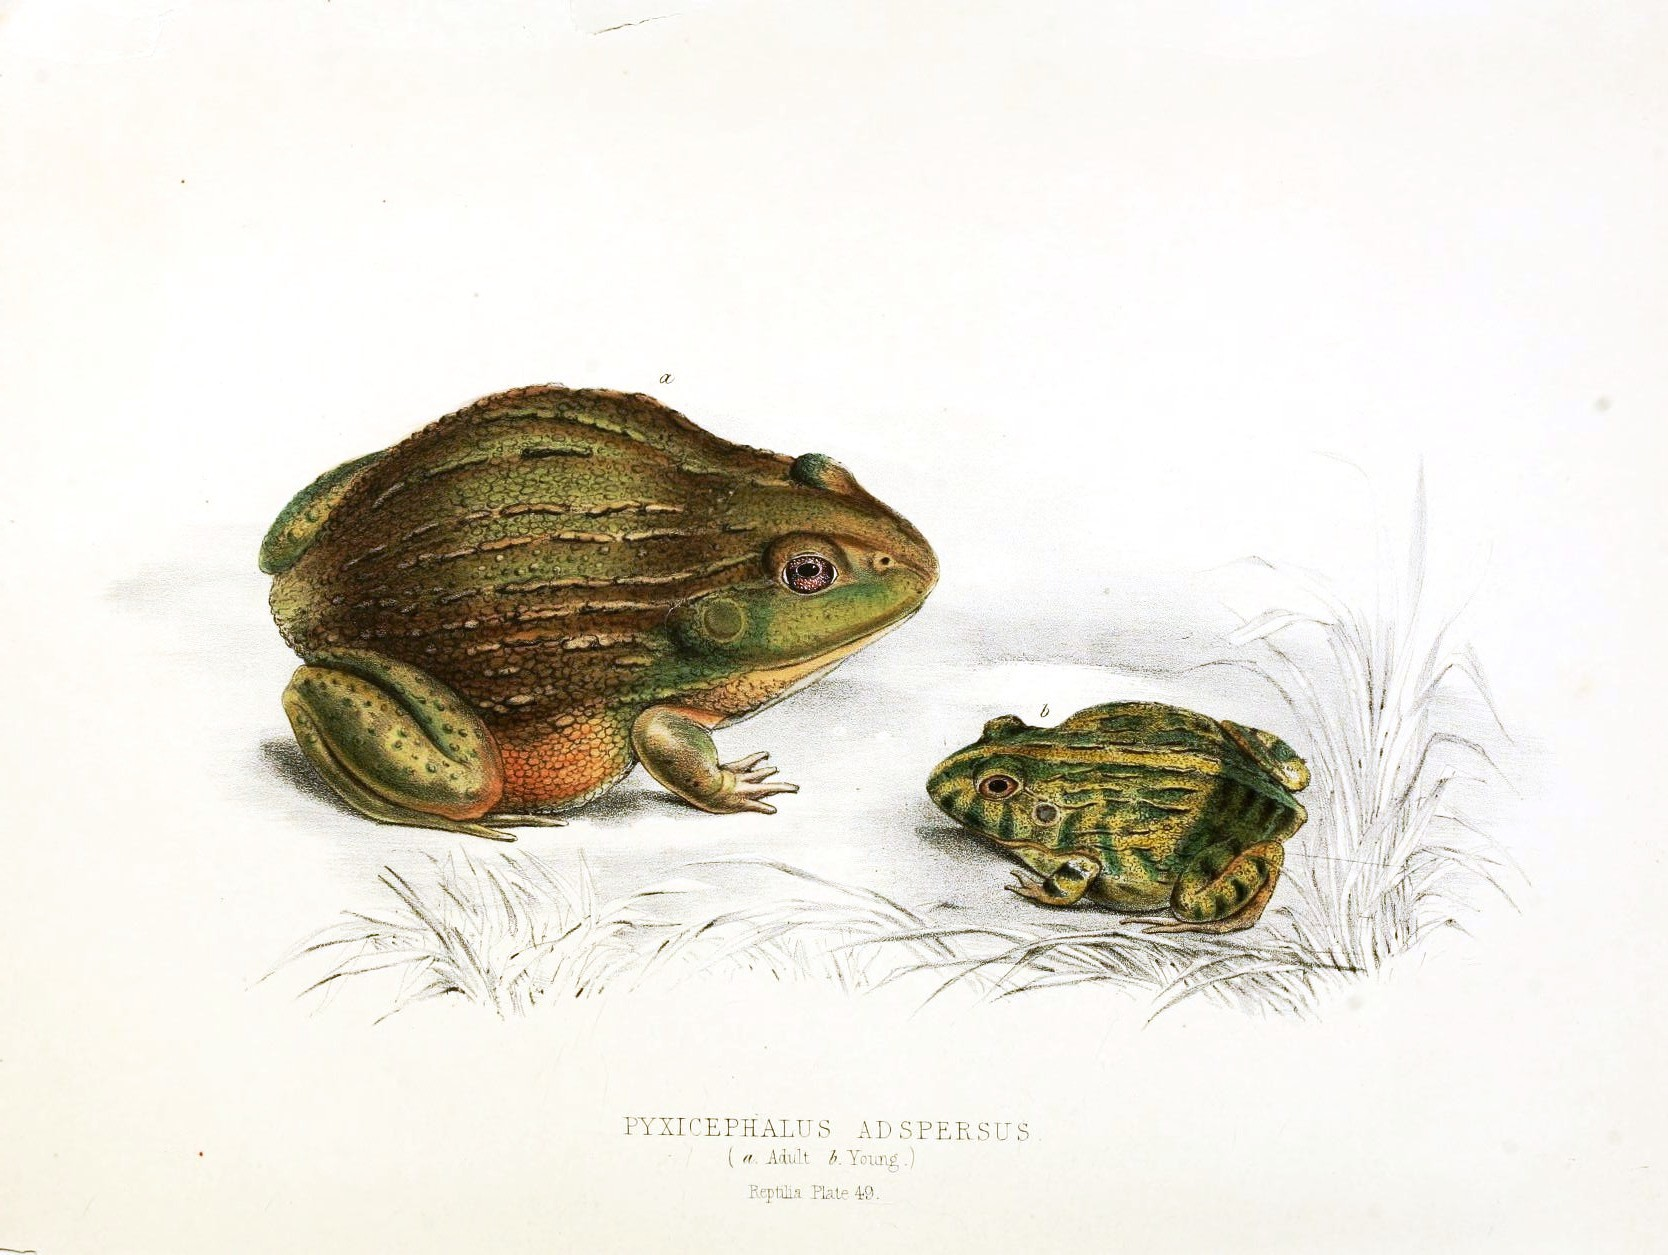 A classic vintage scientific illustration of two frogs.  A public domain image